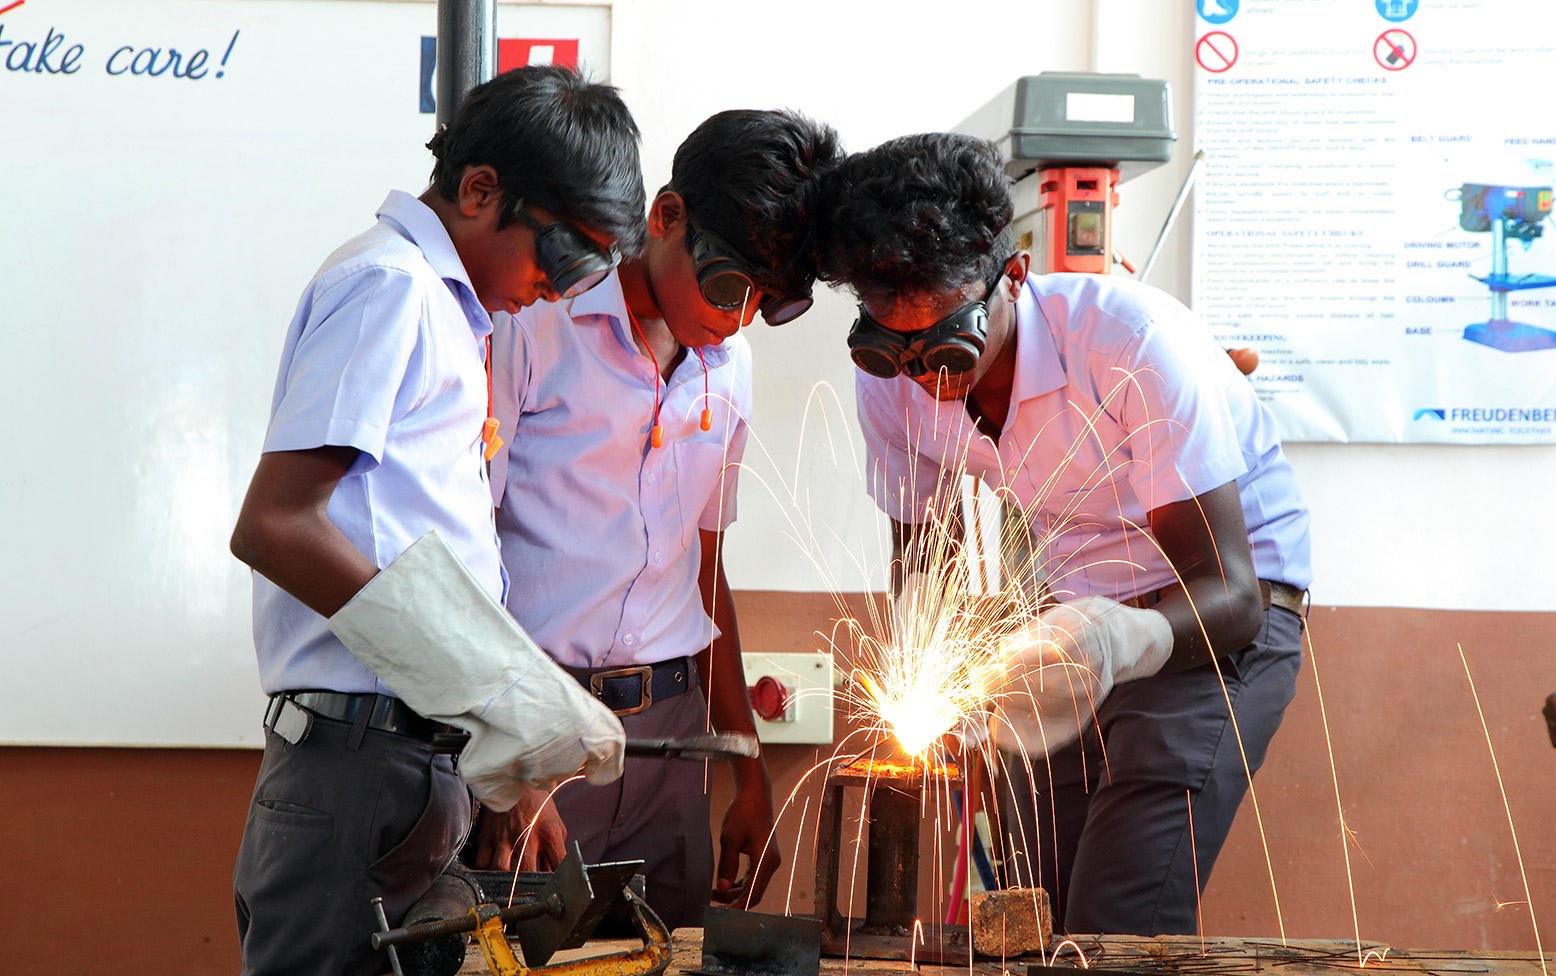 Indian welders at work